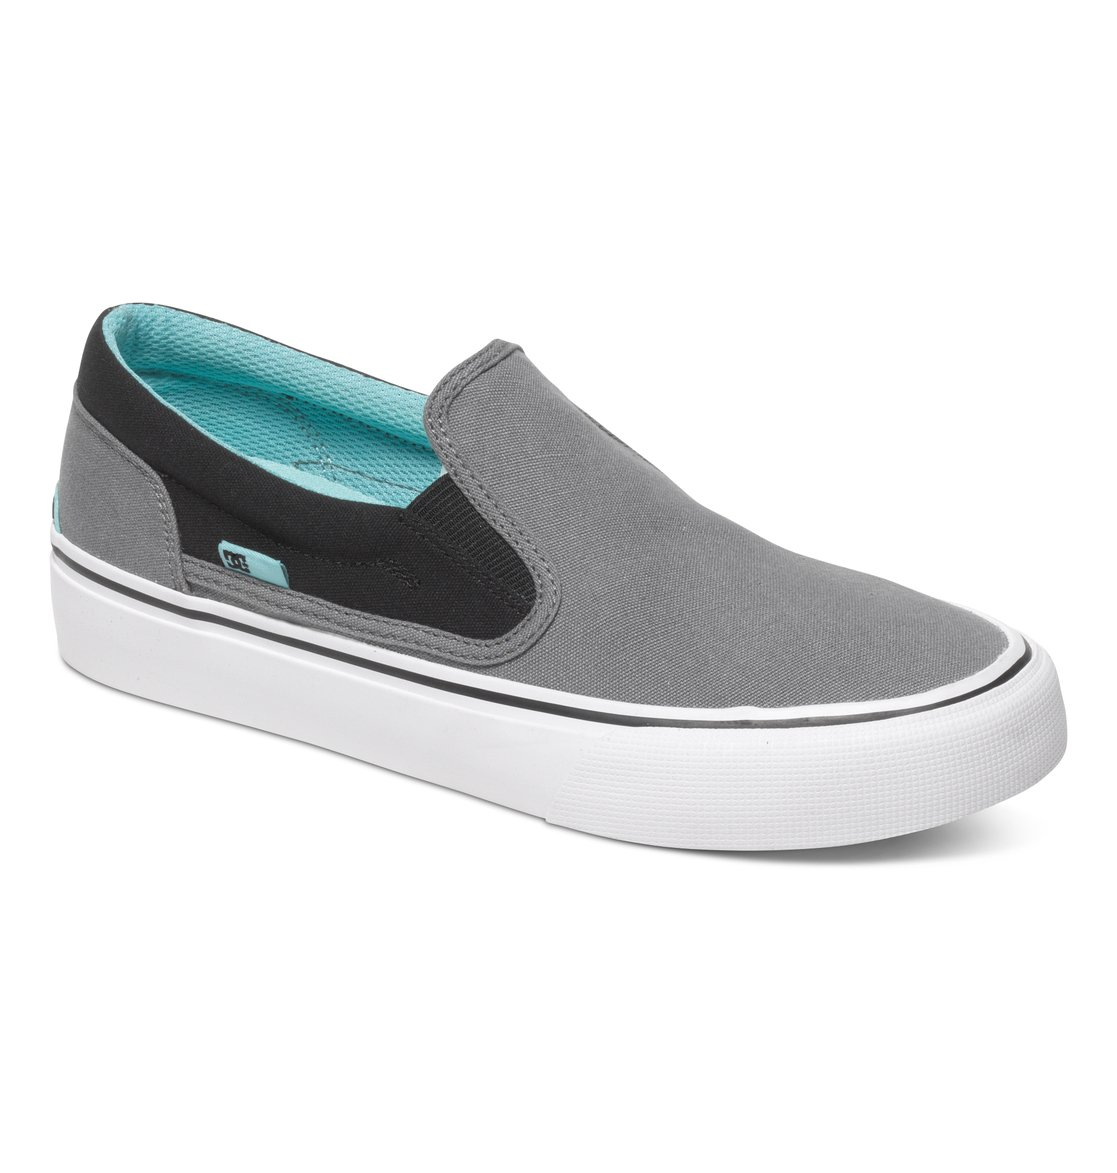 Trase Slip On Shoes